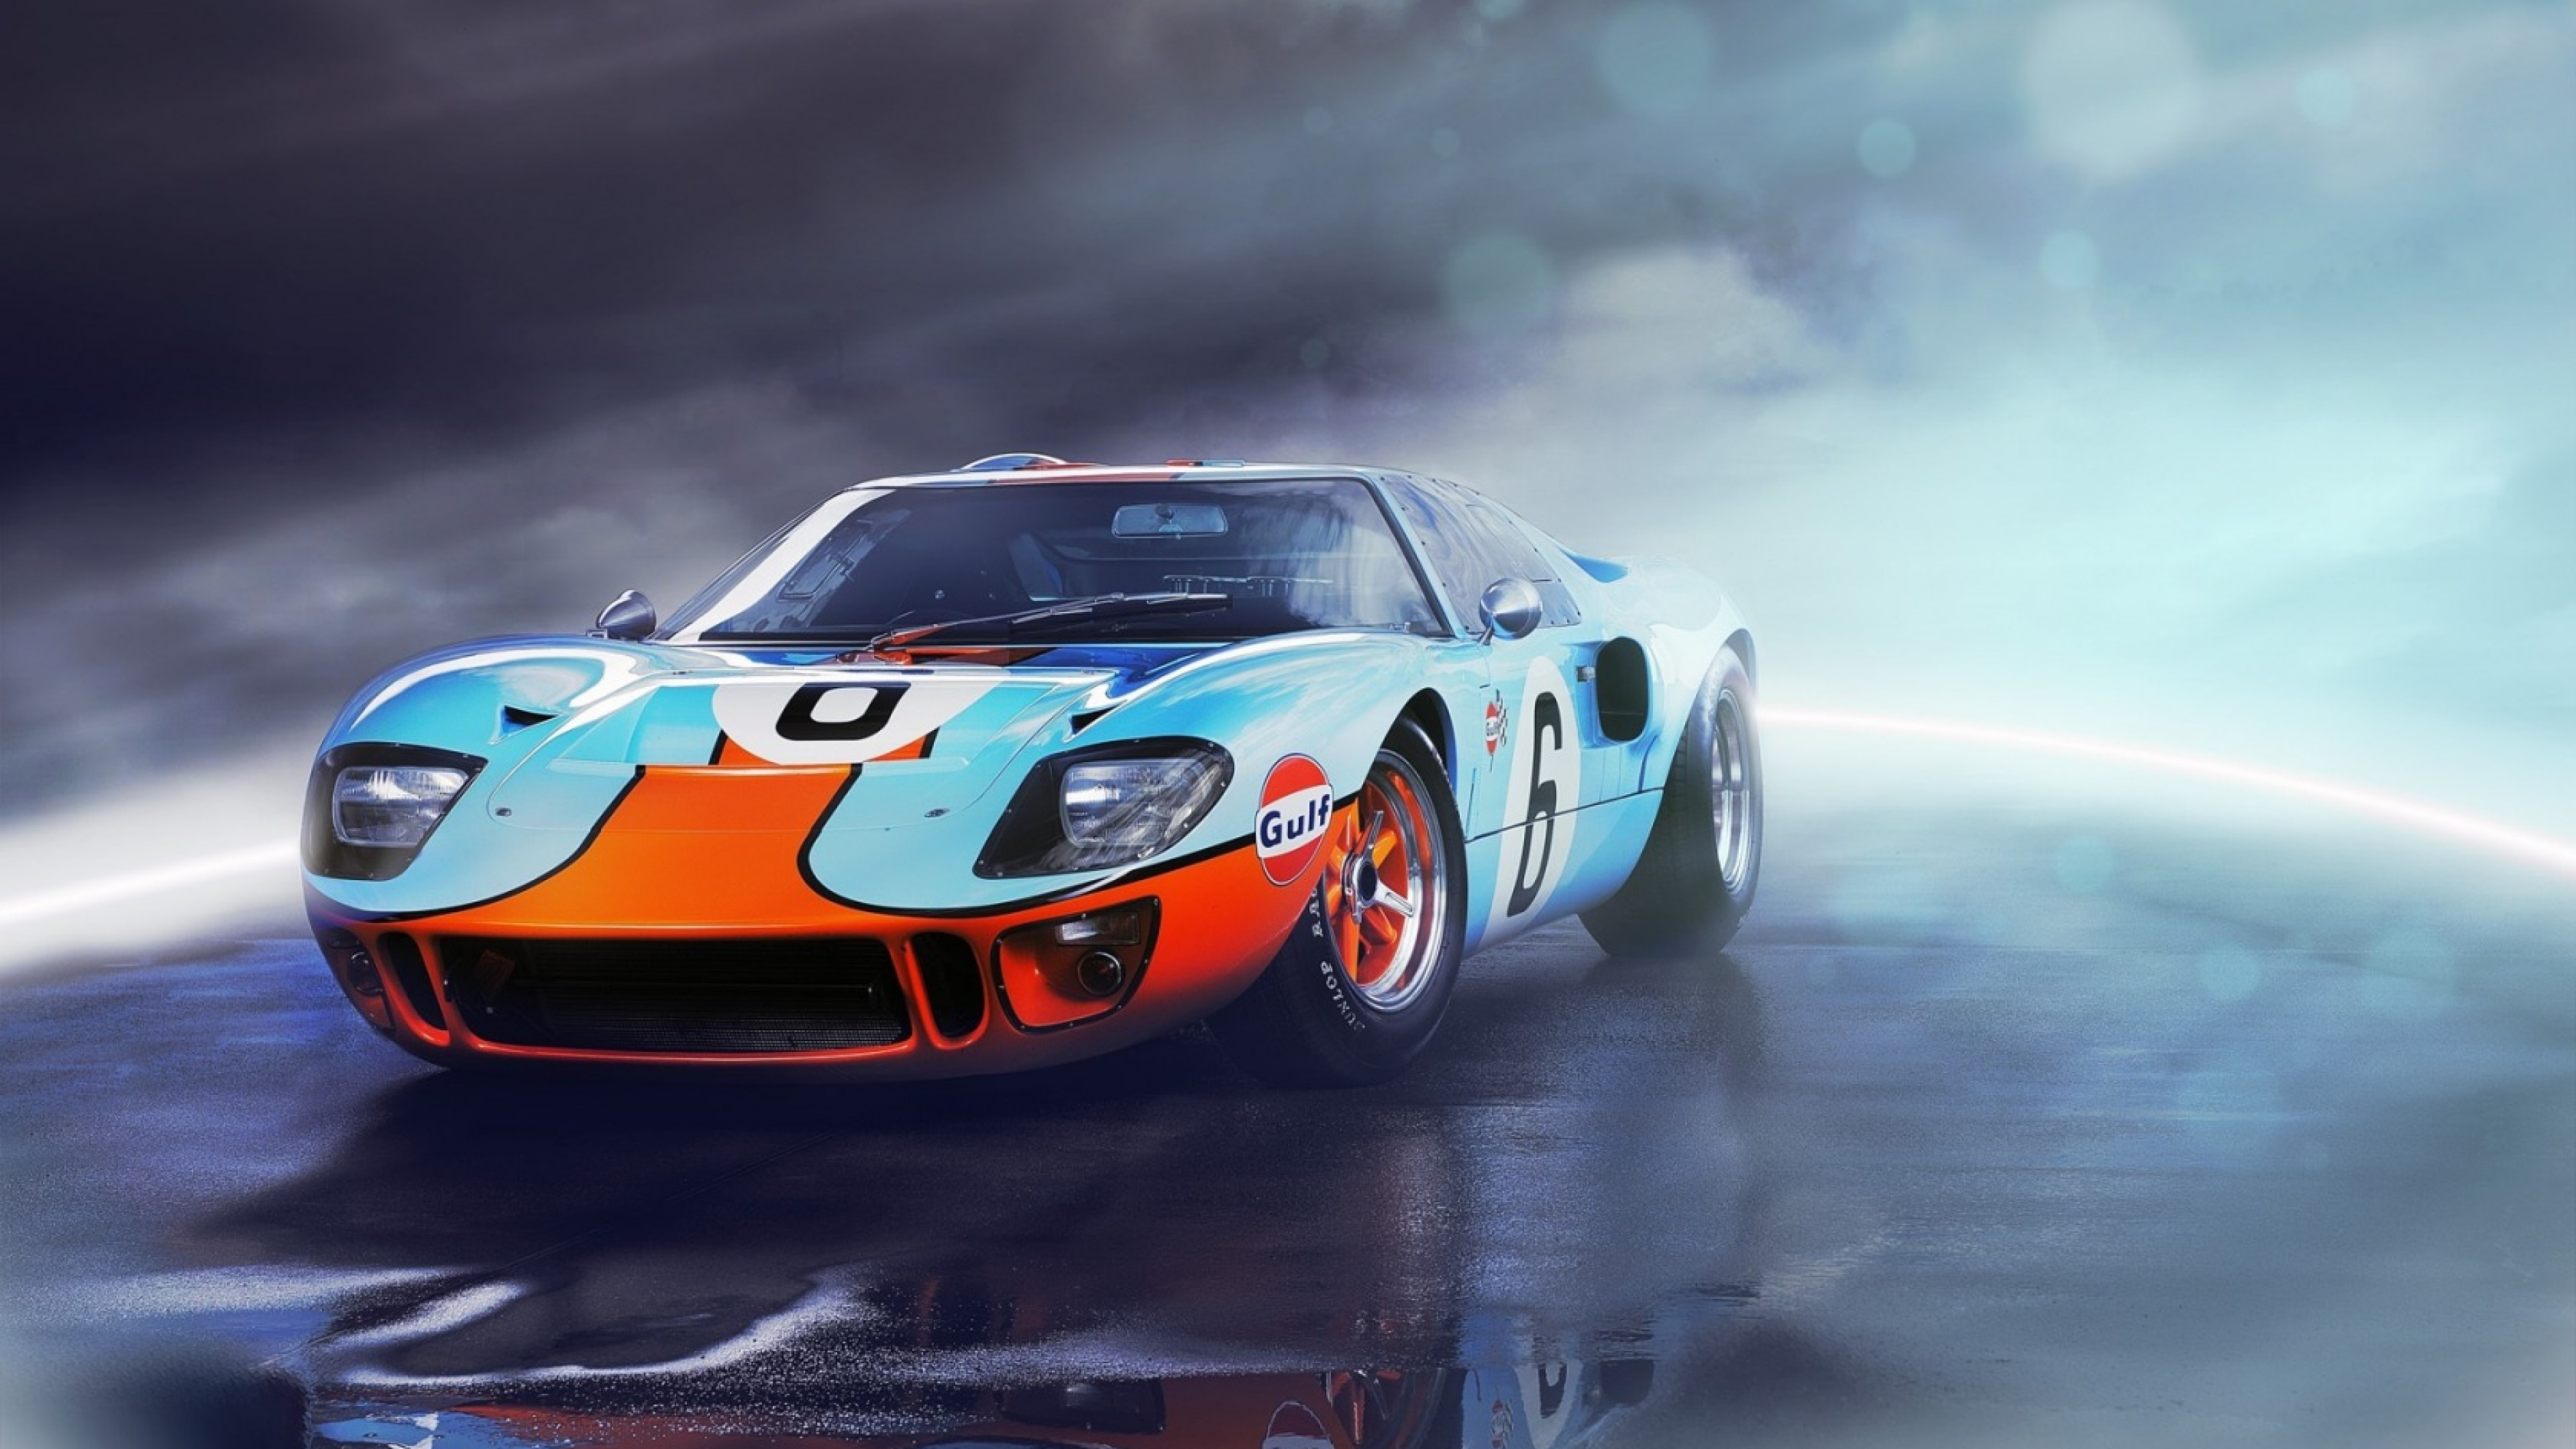 Res: 3840x2160, Ford Gt40 Wallpaper